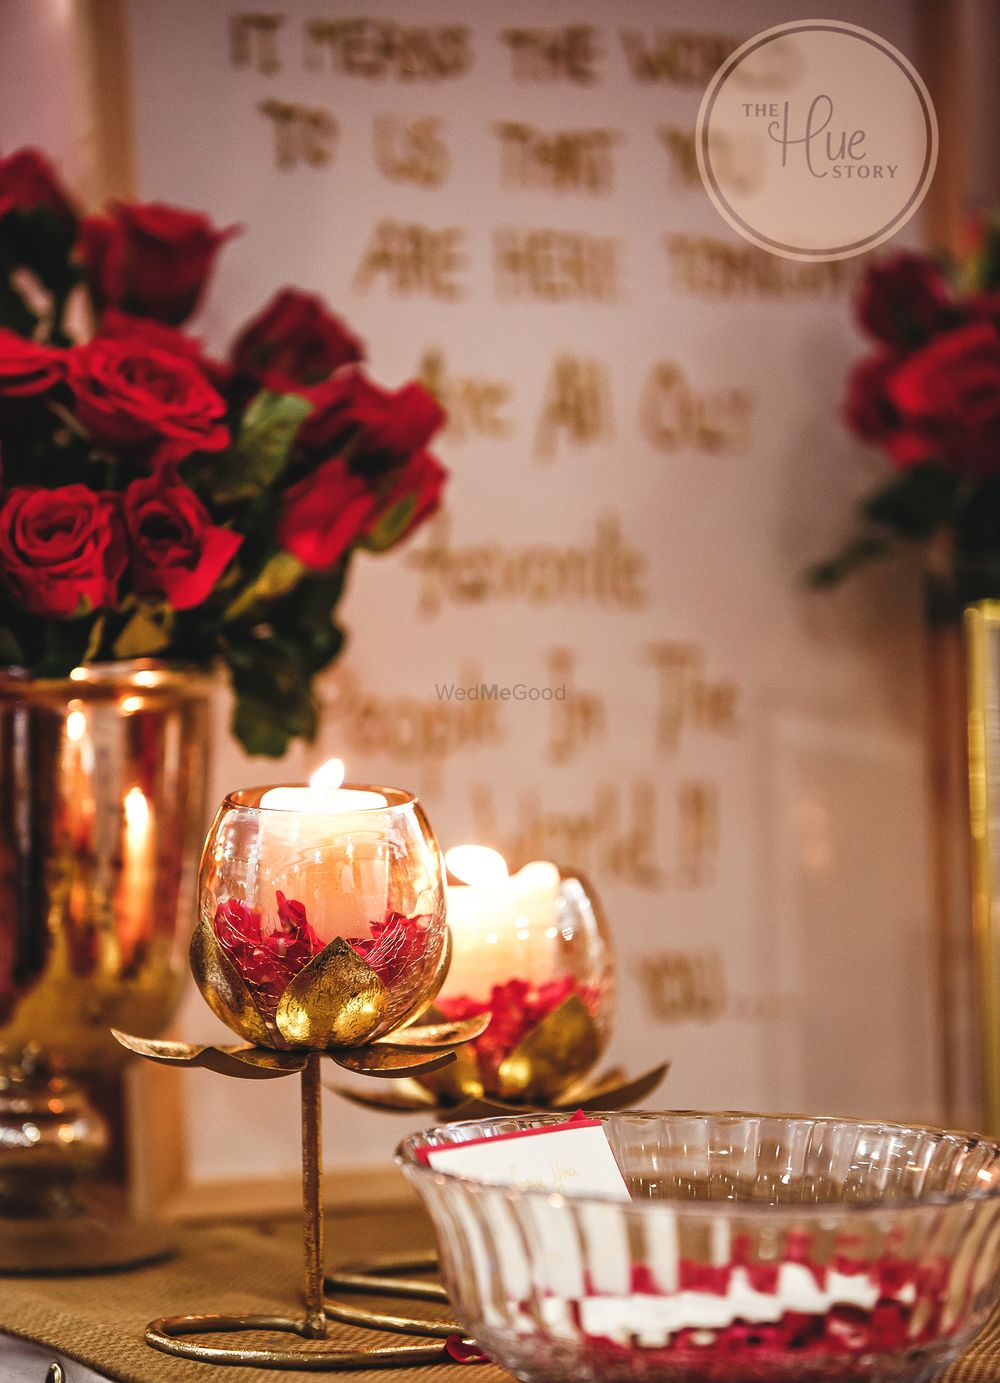 Photo From Red and Gold Wedding Reception - By The Hue Story